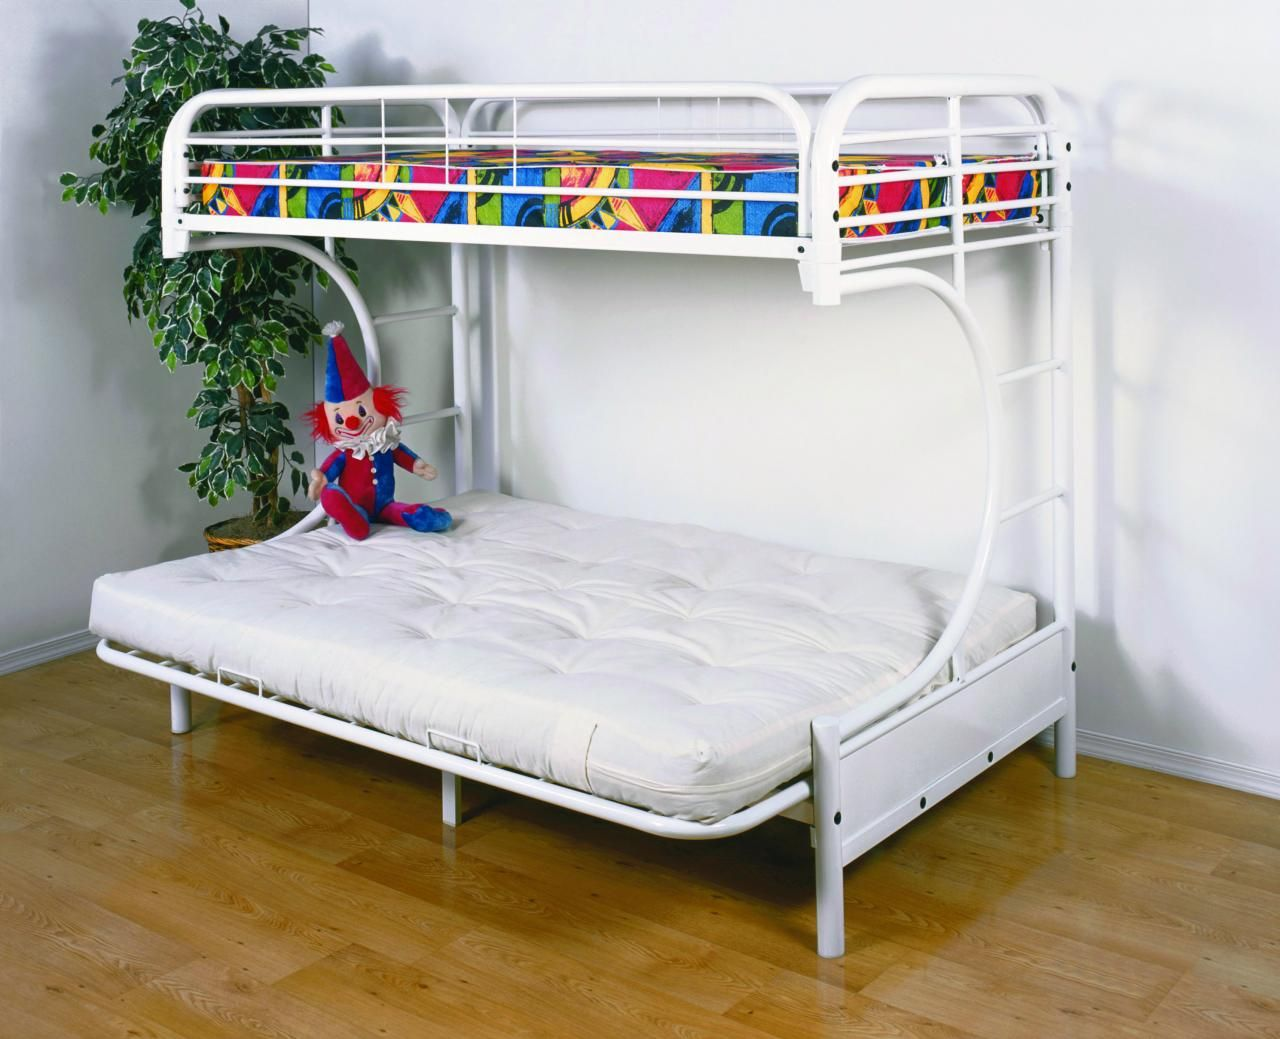 New Bed Bottom Folds Into A Couch For Peeps To Sit In So It S Good For A Small Room Have Yet To Get A Mattress Bu Modern Bunk Beds Futon Bunk Bed